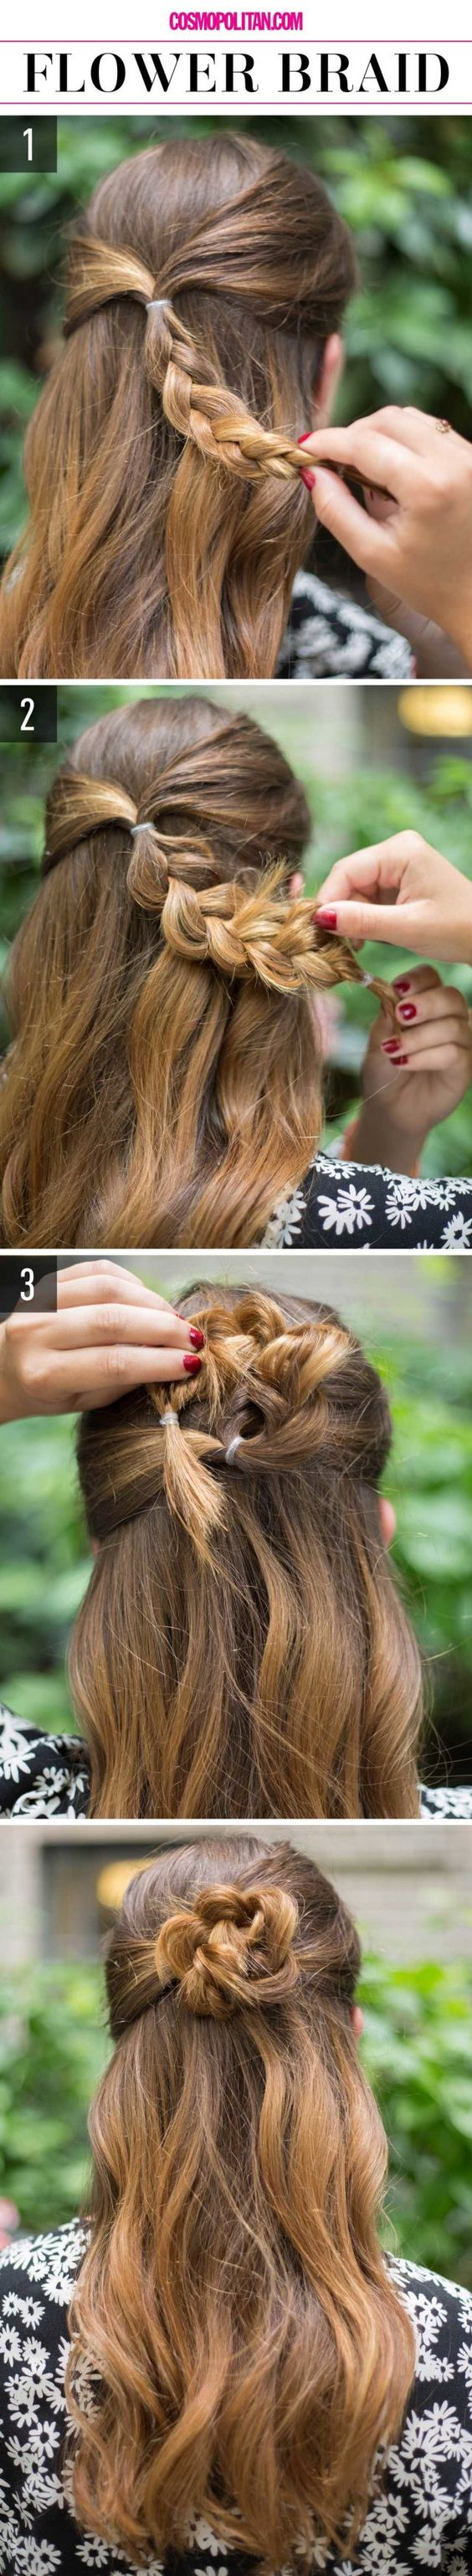 Lazy girl, Hairstyles and Flower braids on Pinterest